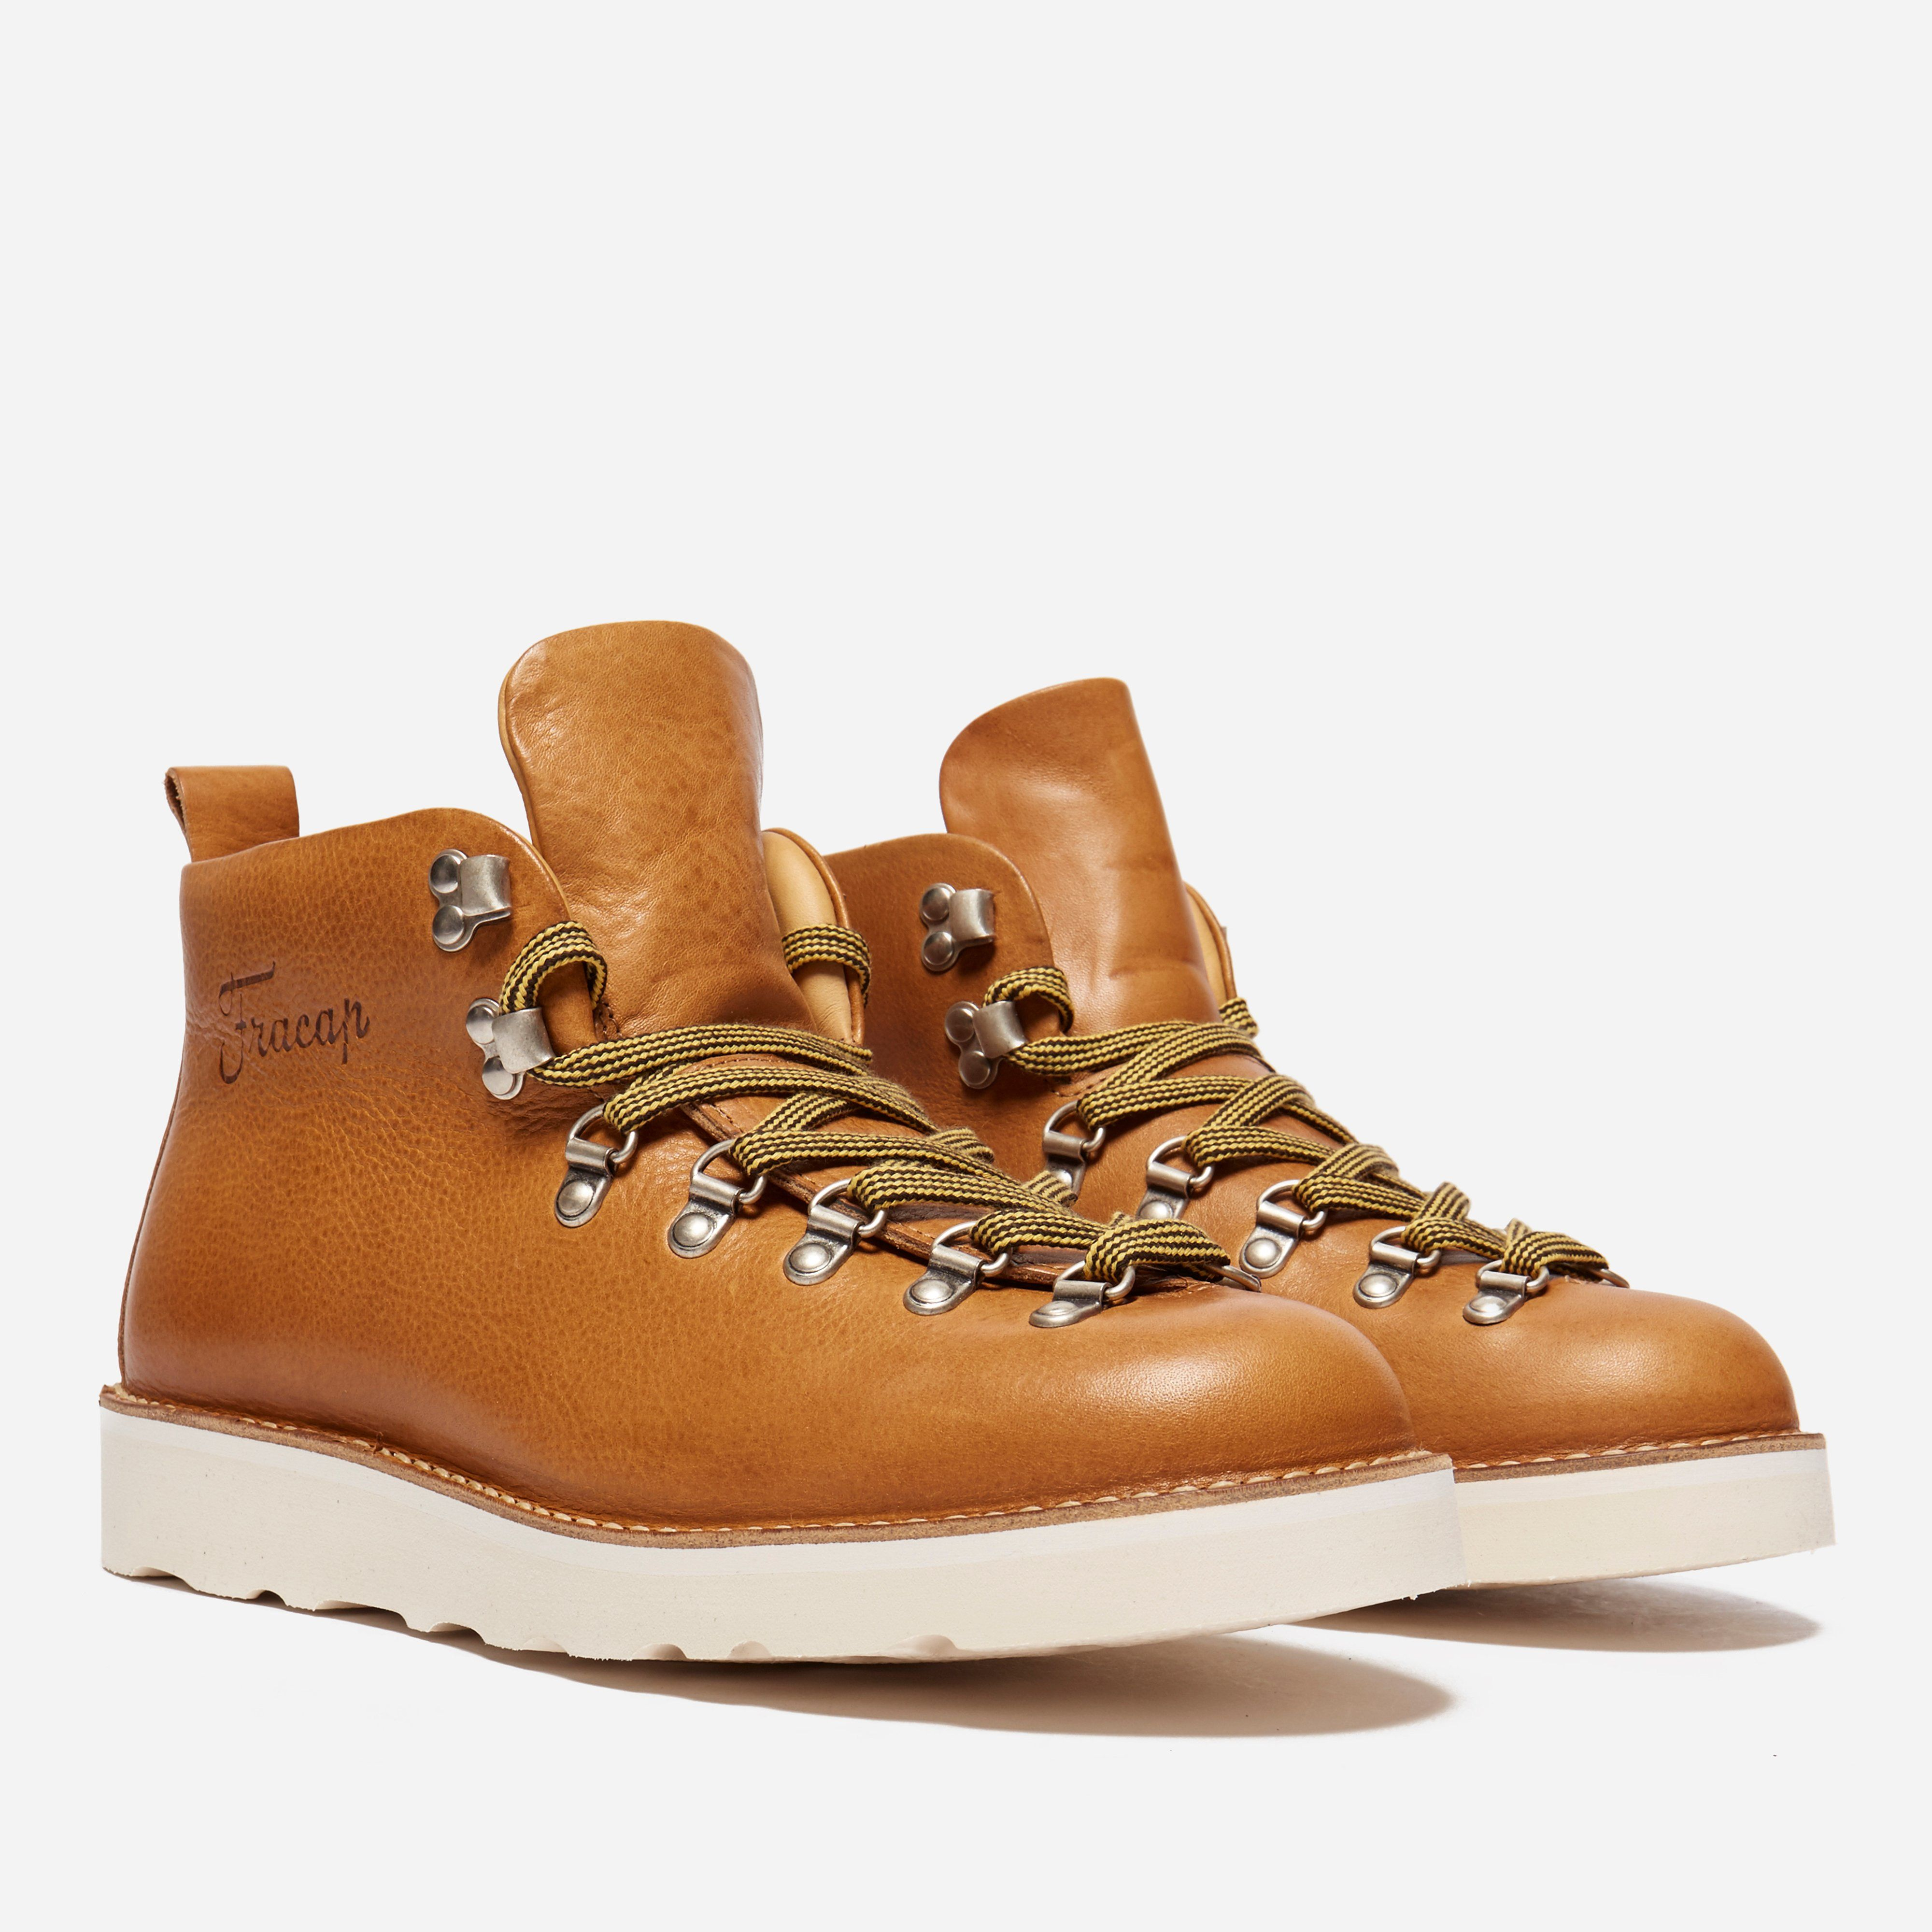 Fracap M120 Nebraska Boot